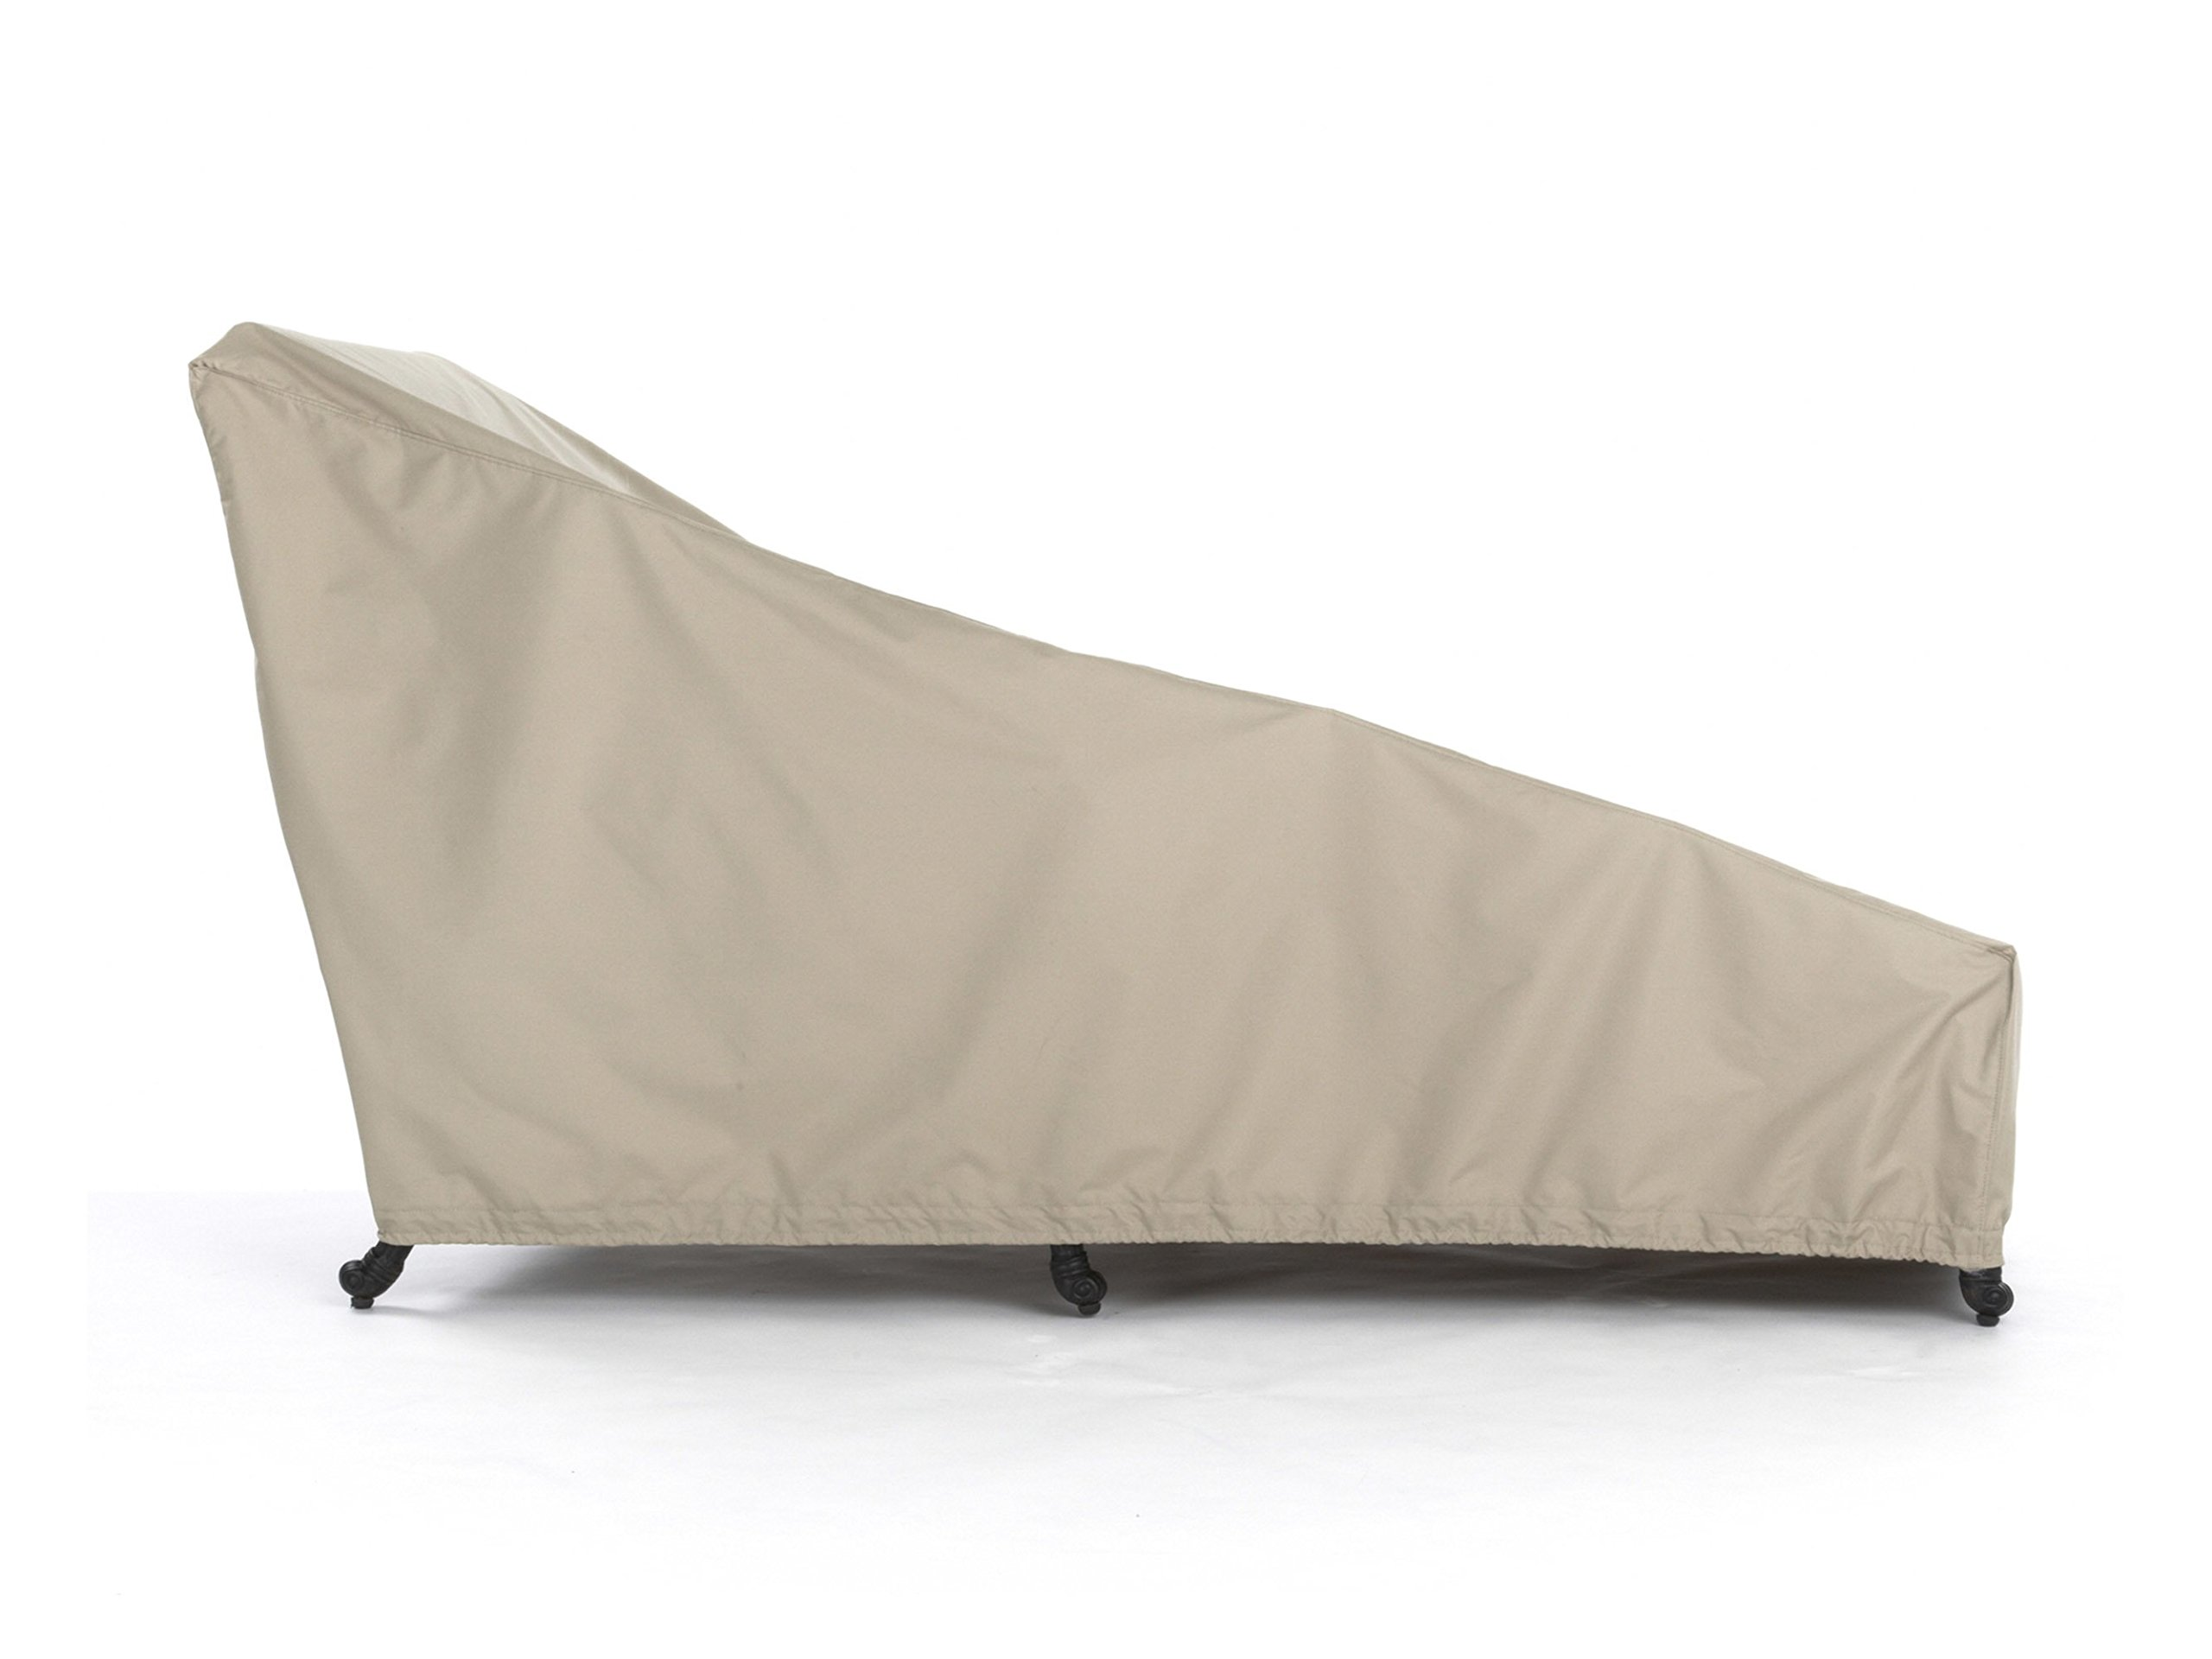 Covermates – Chaise Lounge Cover – 25W x 78D x 30H – Elite Collection – 3 YR Warranty – Year Around Protection - Khaki